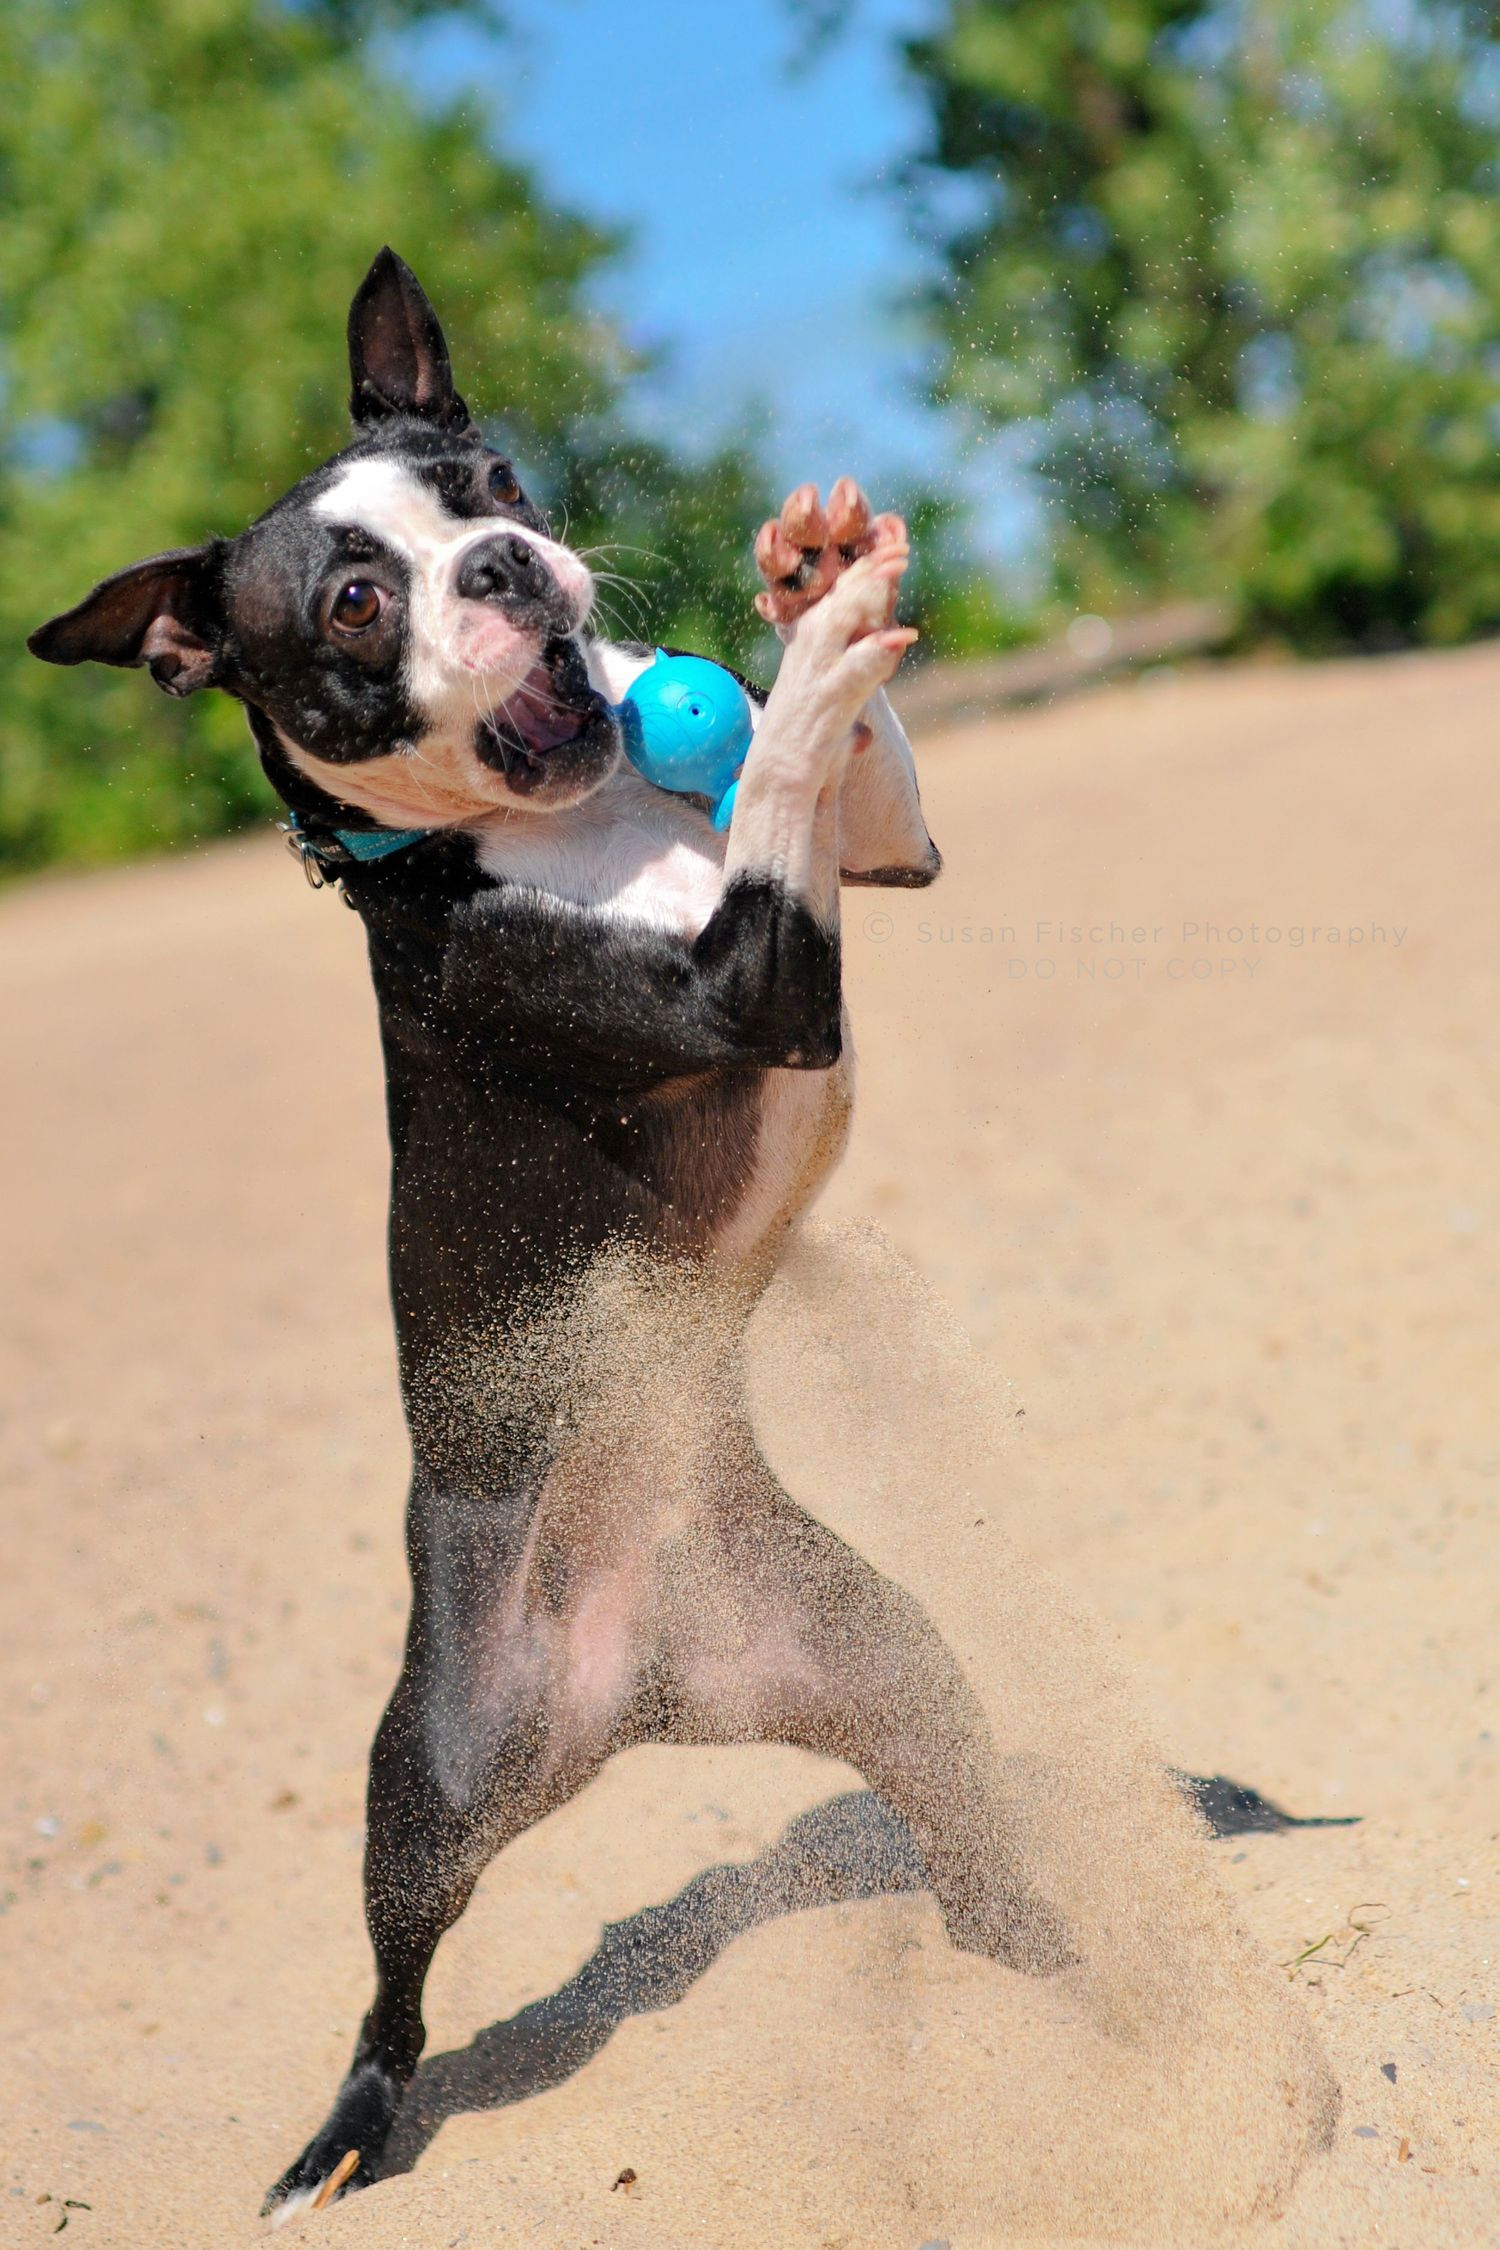 A Boston Terrier jumping to catch a ball in the sand